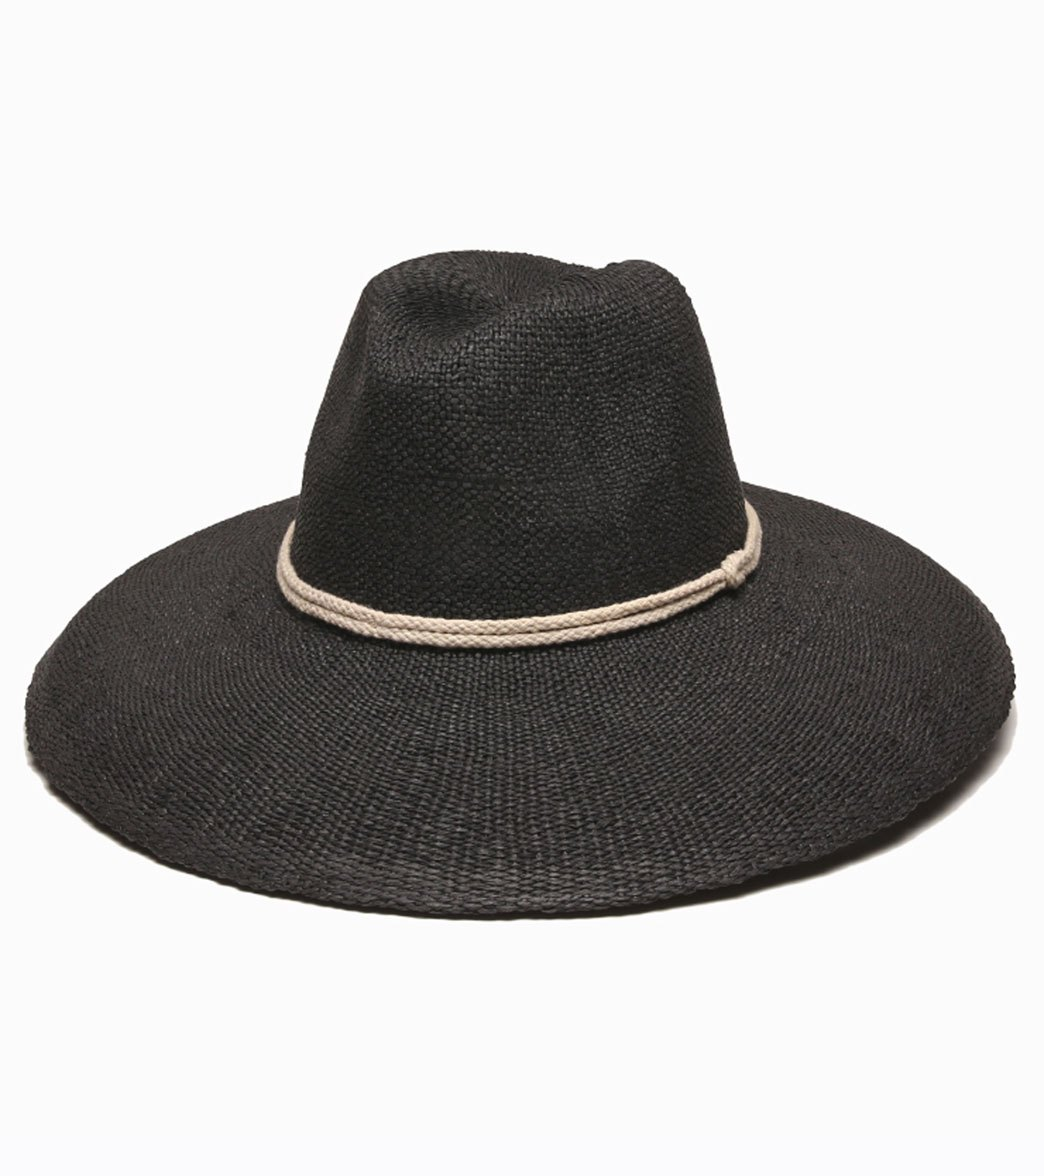 47807204d14 Physician Endorsed Praia Sun Hat at SwimOutlet.com